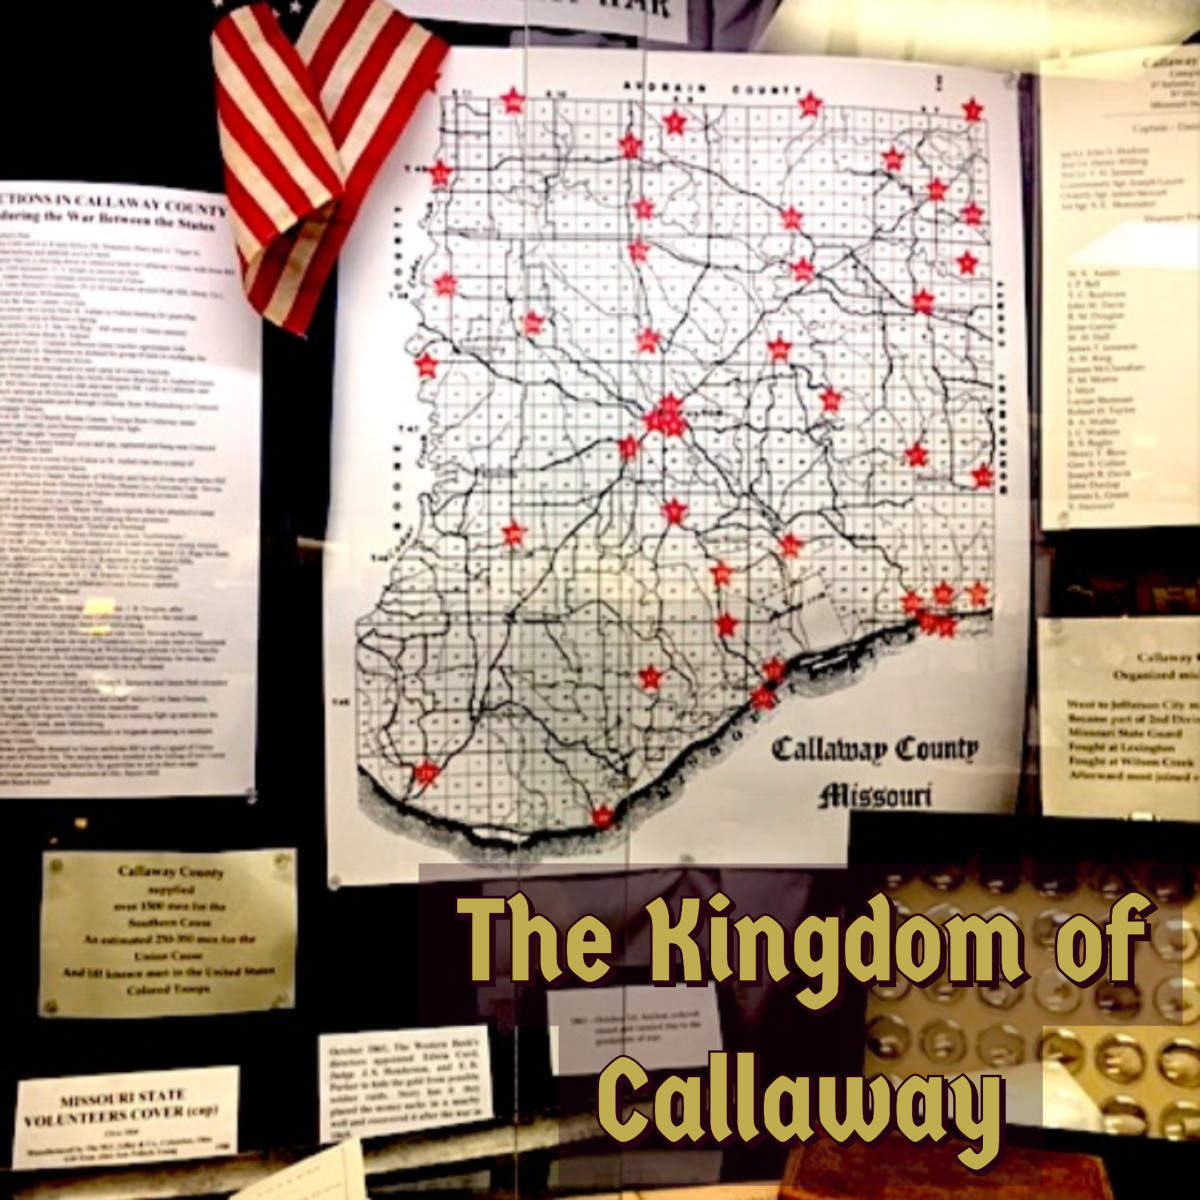 The Legend of the Kingdom of Callaway